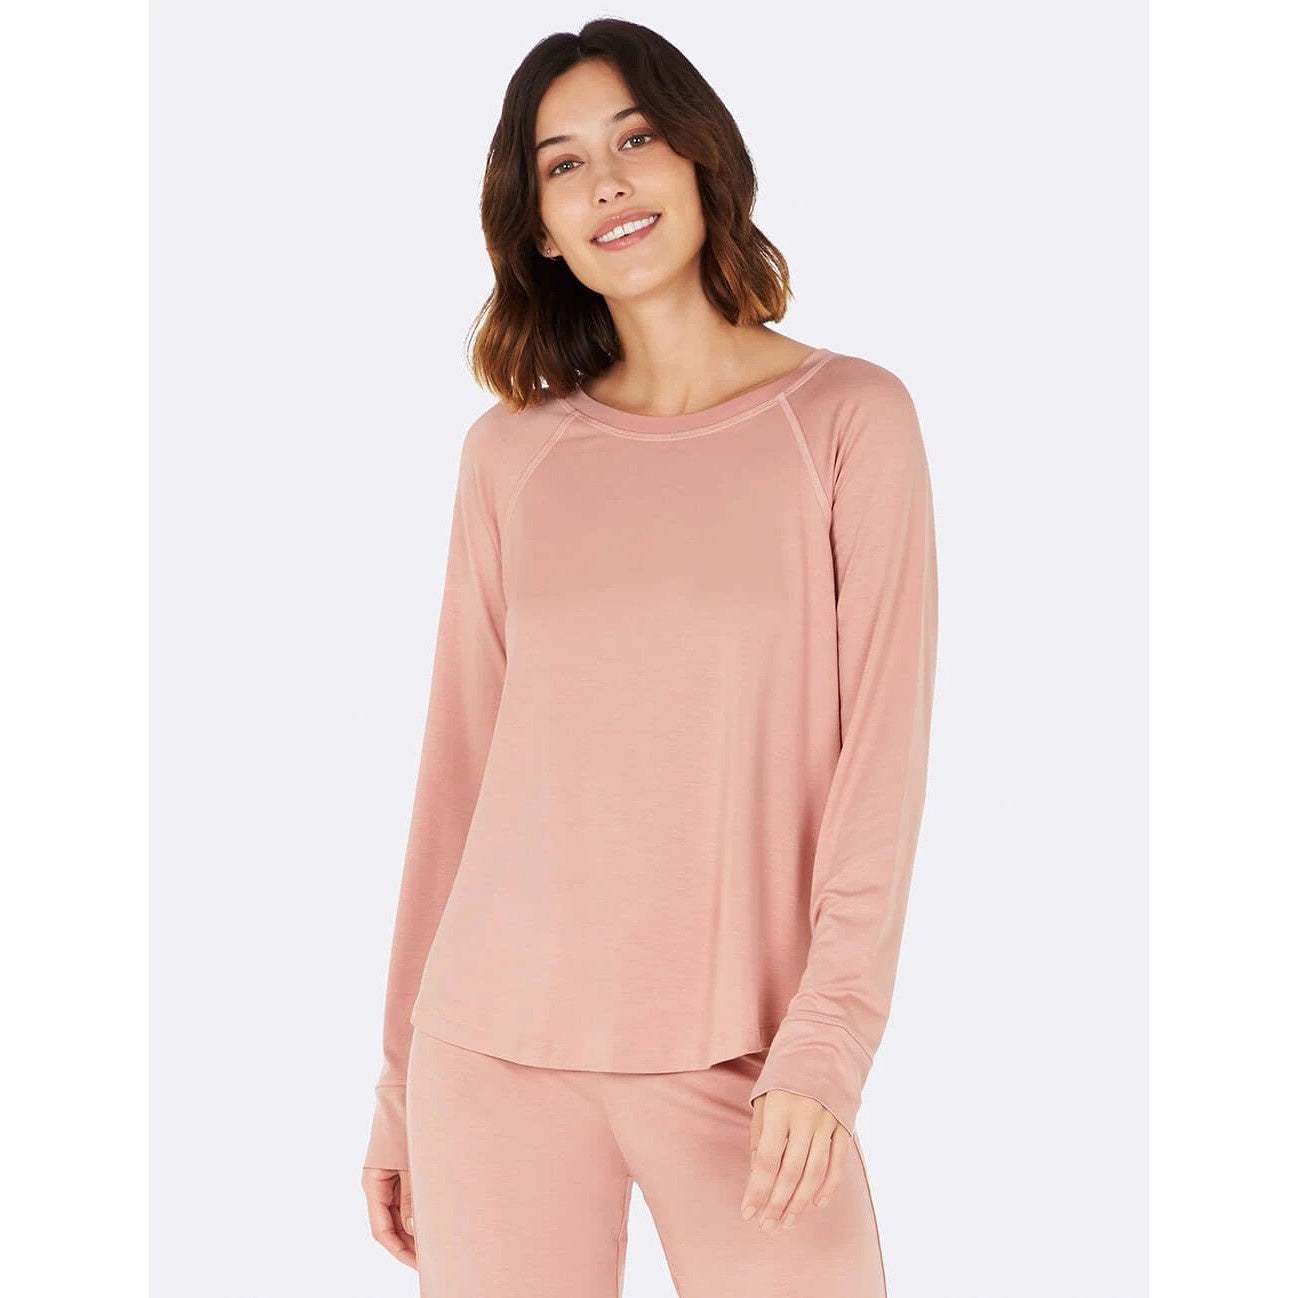 Boody Blush Goodnight Raglan Sleep Top